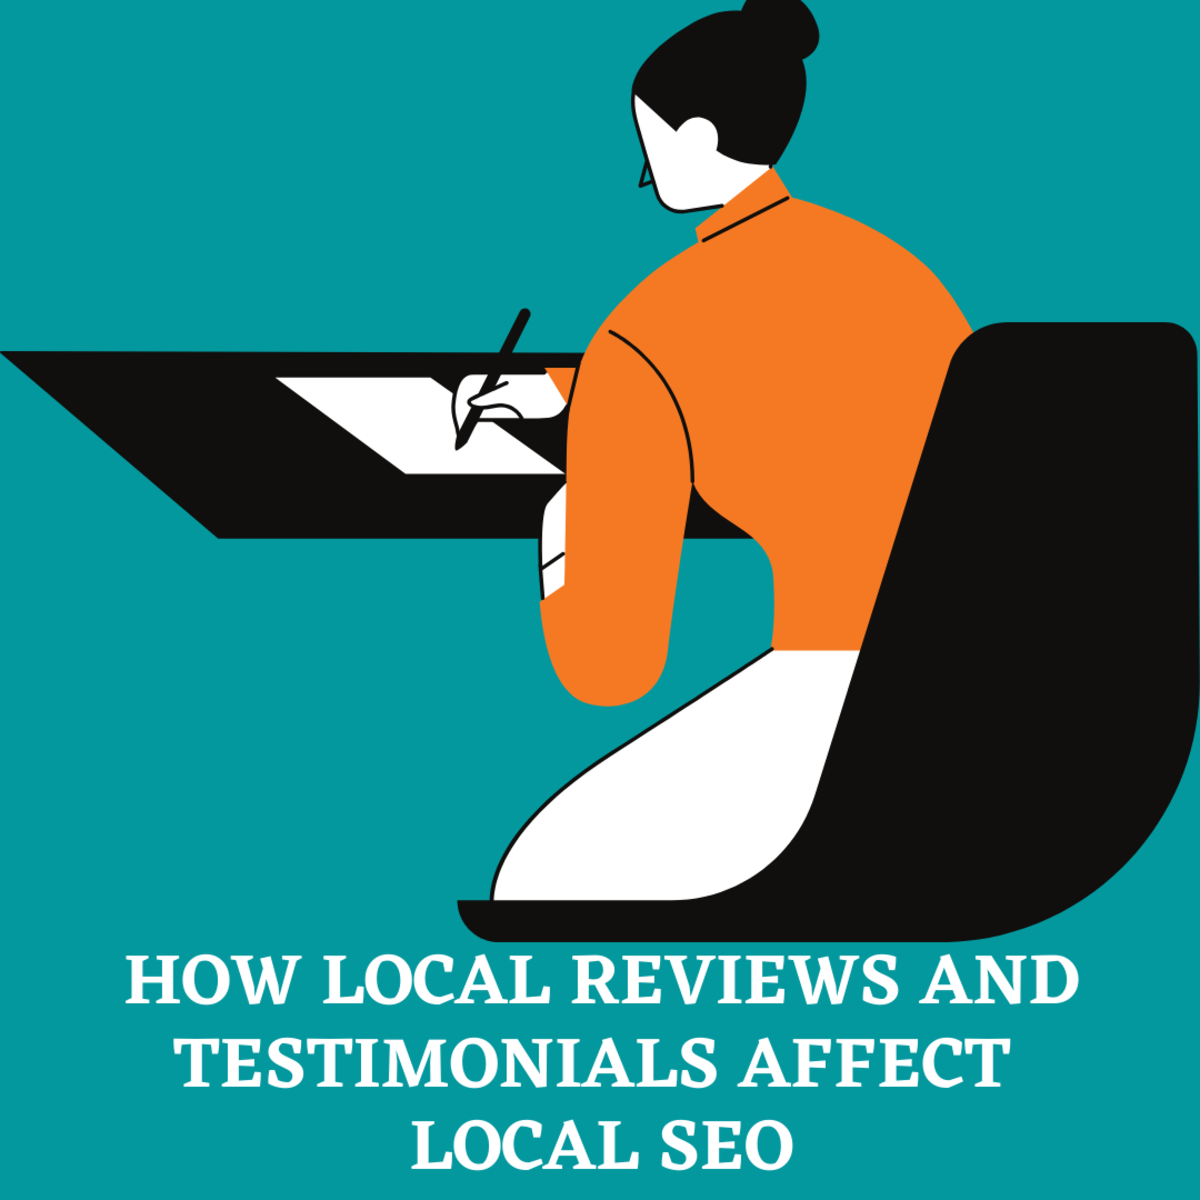 How Local Reviews and Testimonials Can Affect Local SEO